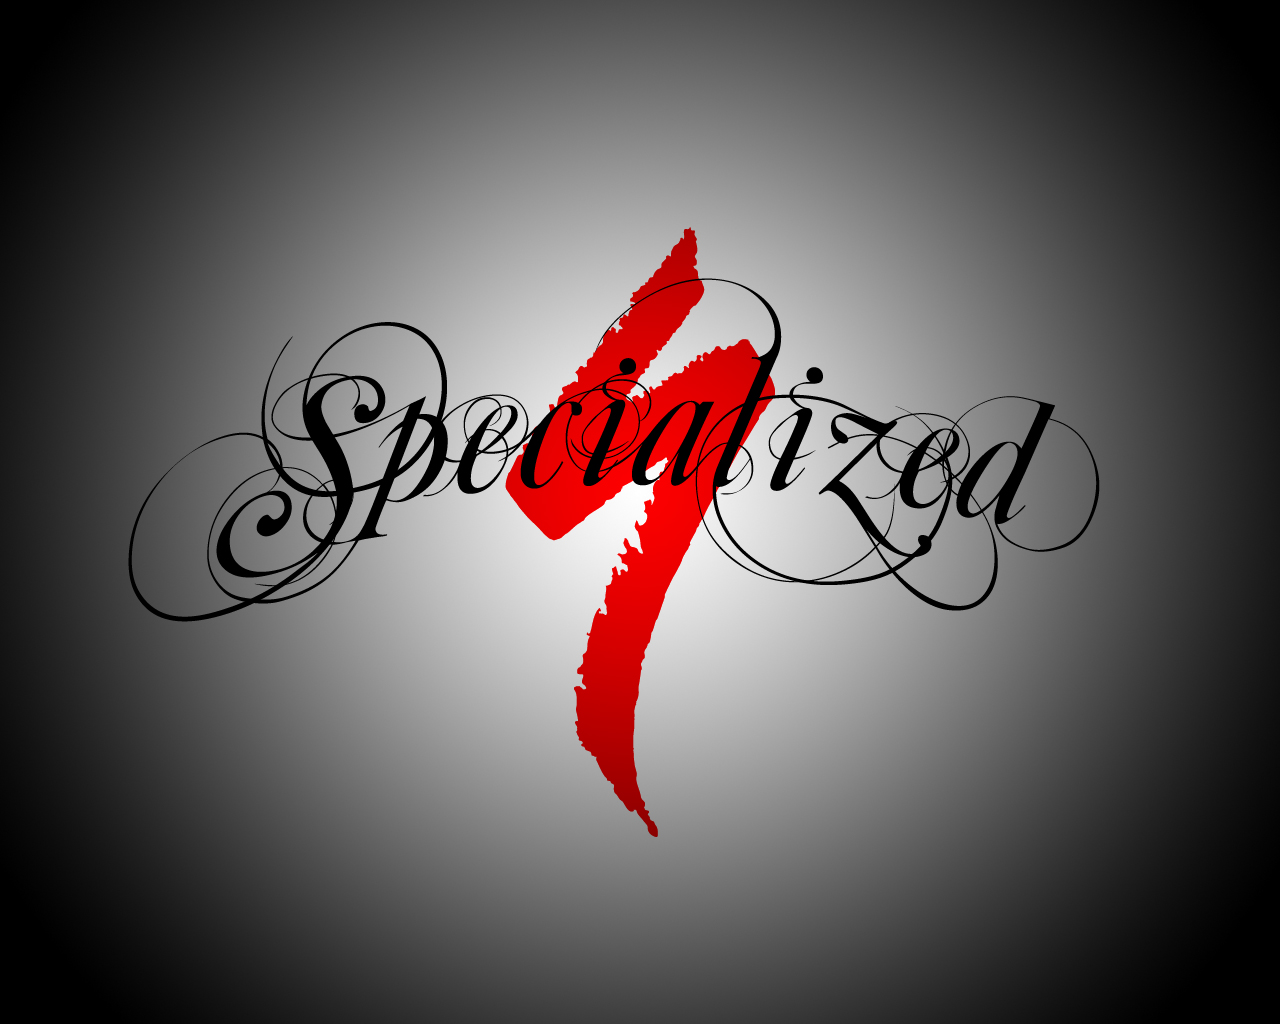 Specialized Wallpaper - Fade by FL1P51D3 on DeviantArt